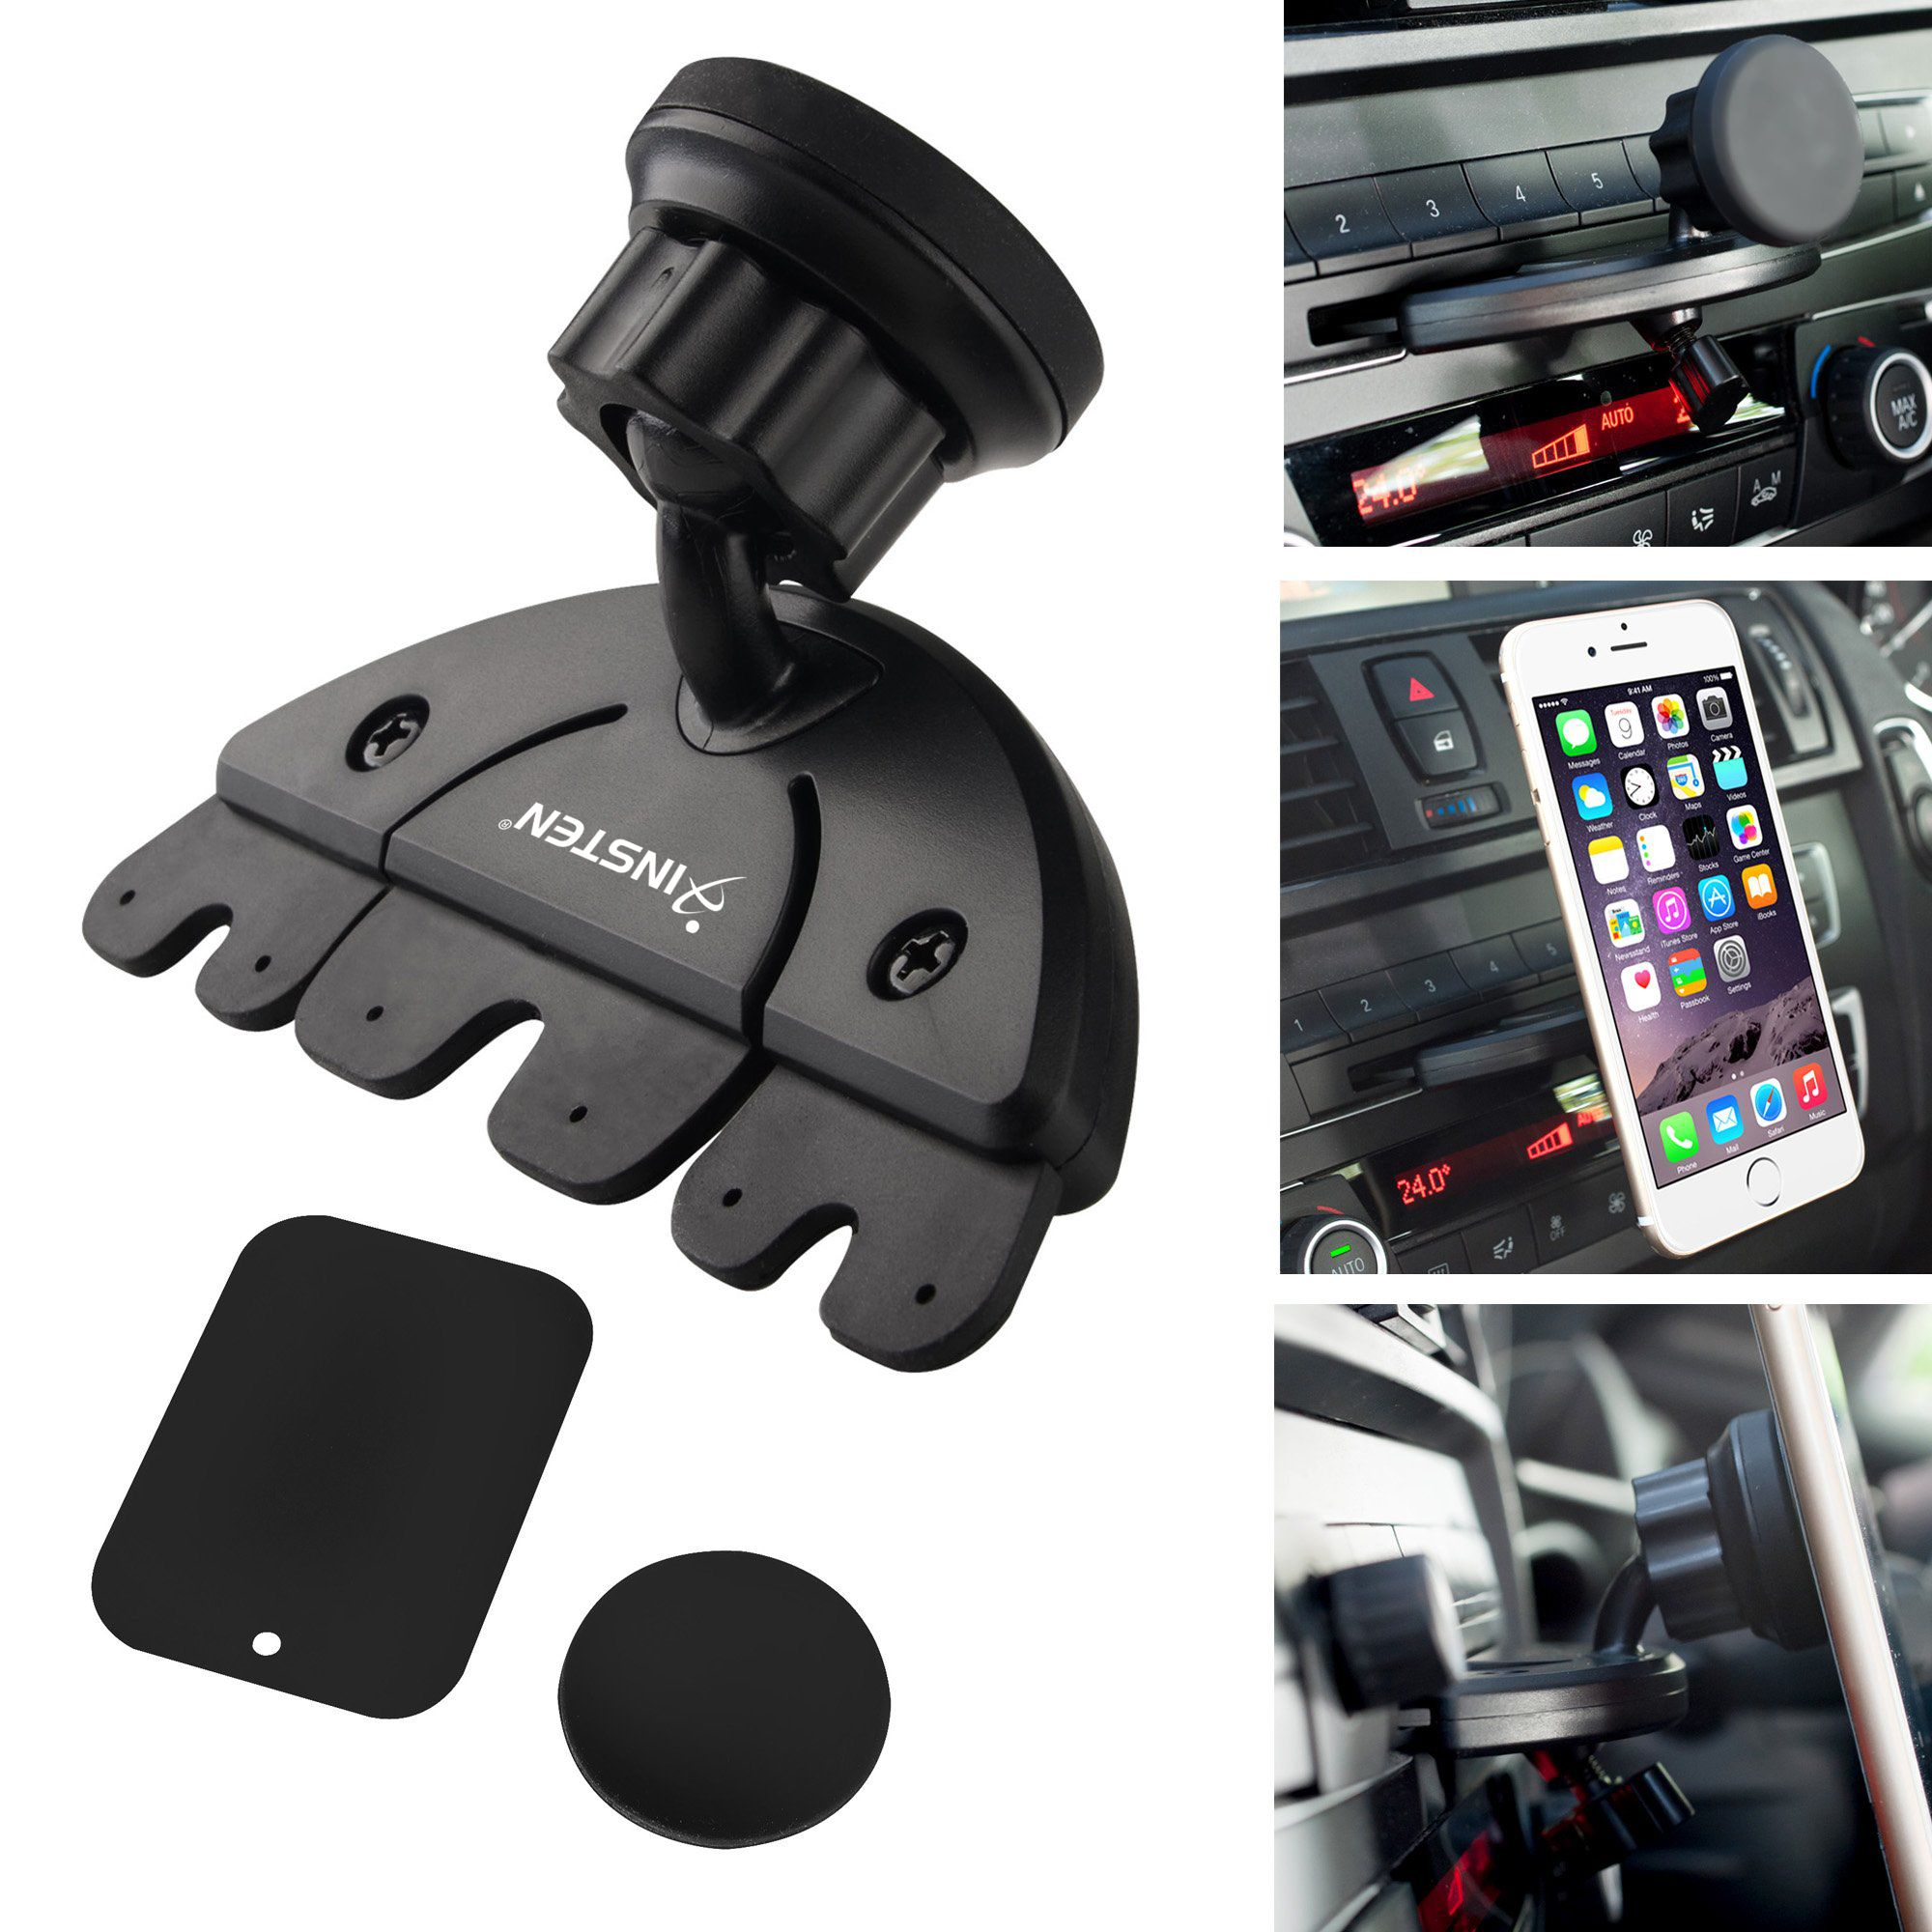 Insten Car CD Slot Magnetic Phone Holder Mount For Apple iPhone 7 6 6S Plus 5S SE / Android Smartphone LG HTC Samsung Galaxy S7 S6 Edge S5 Note 5 4 Core Prime / GPS Device Garmin Universal New Design